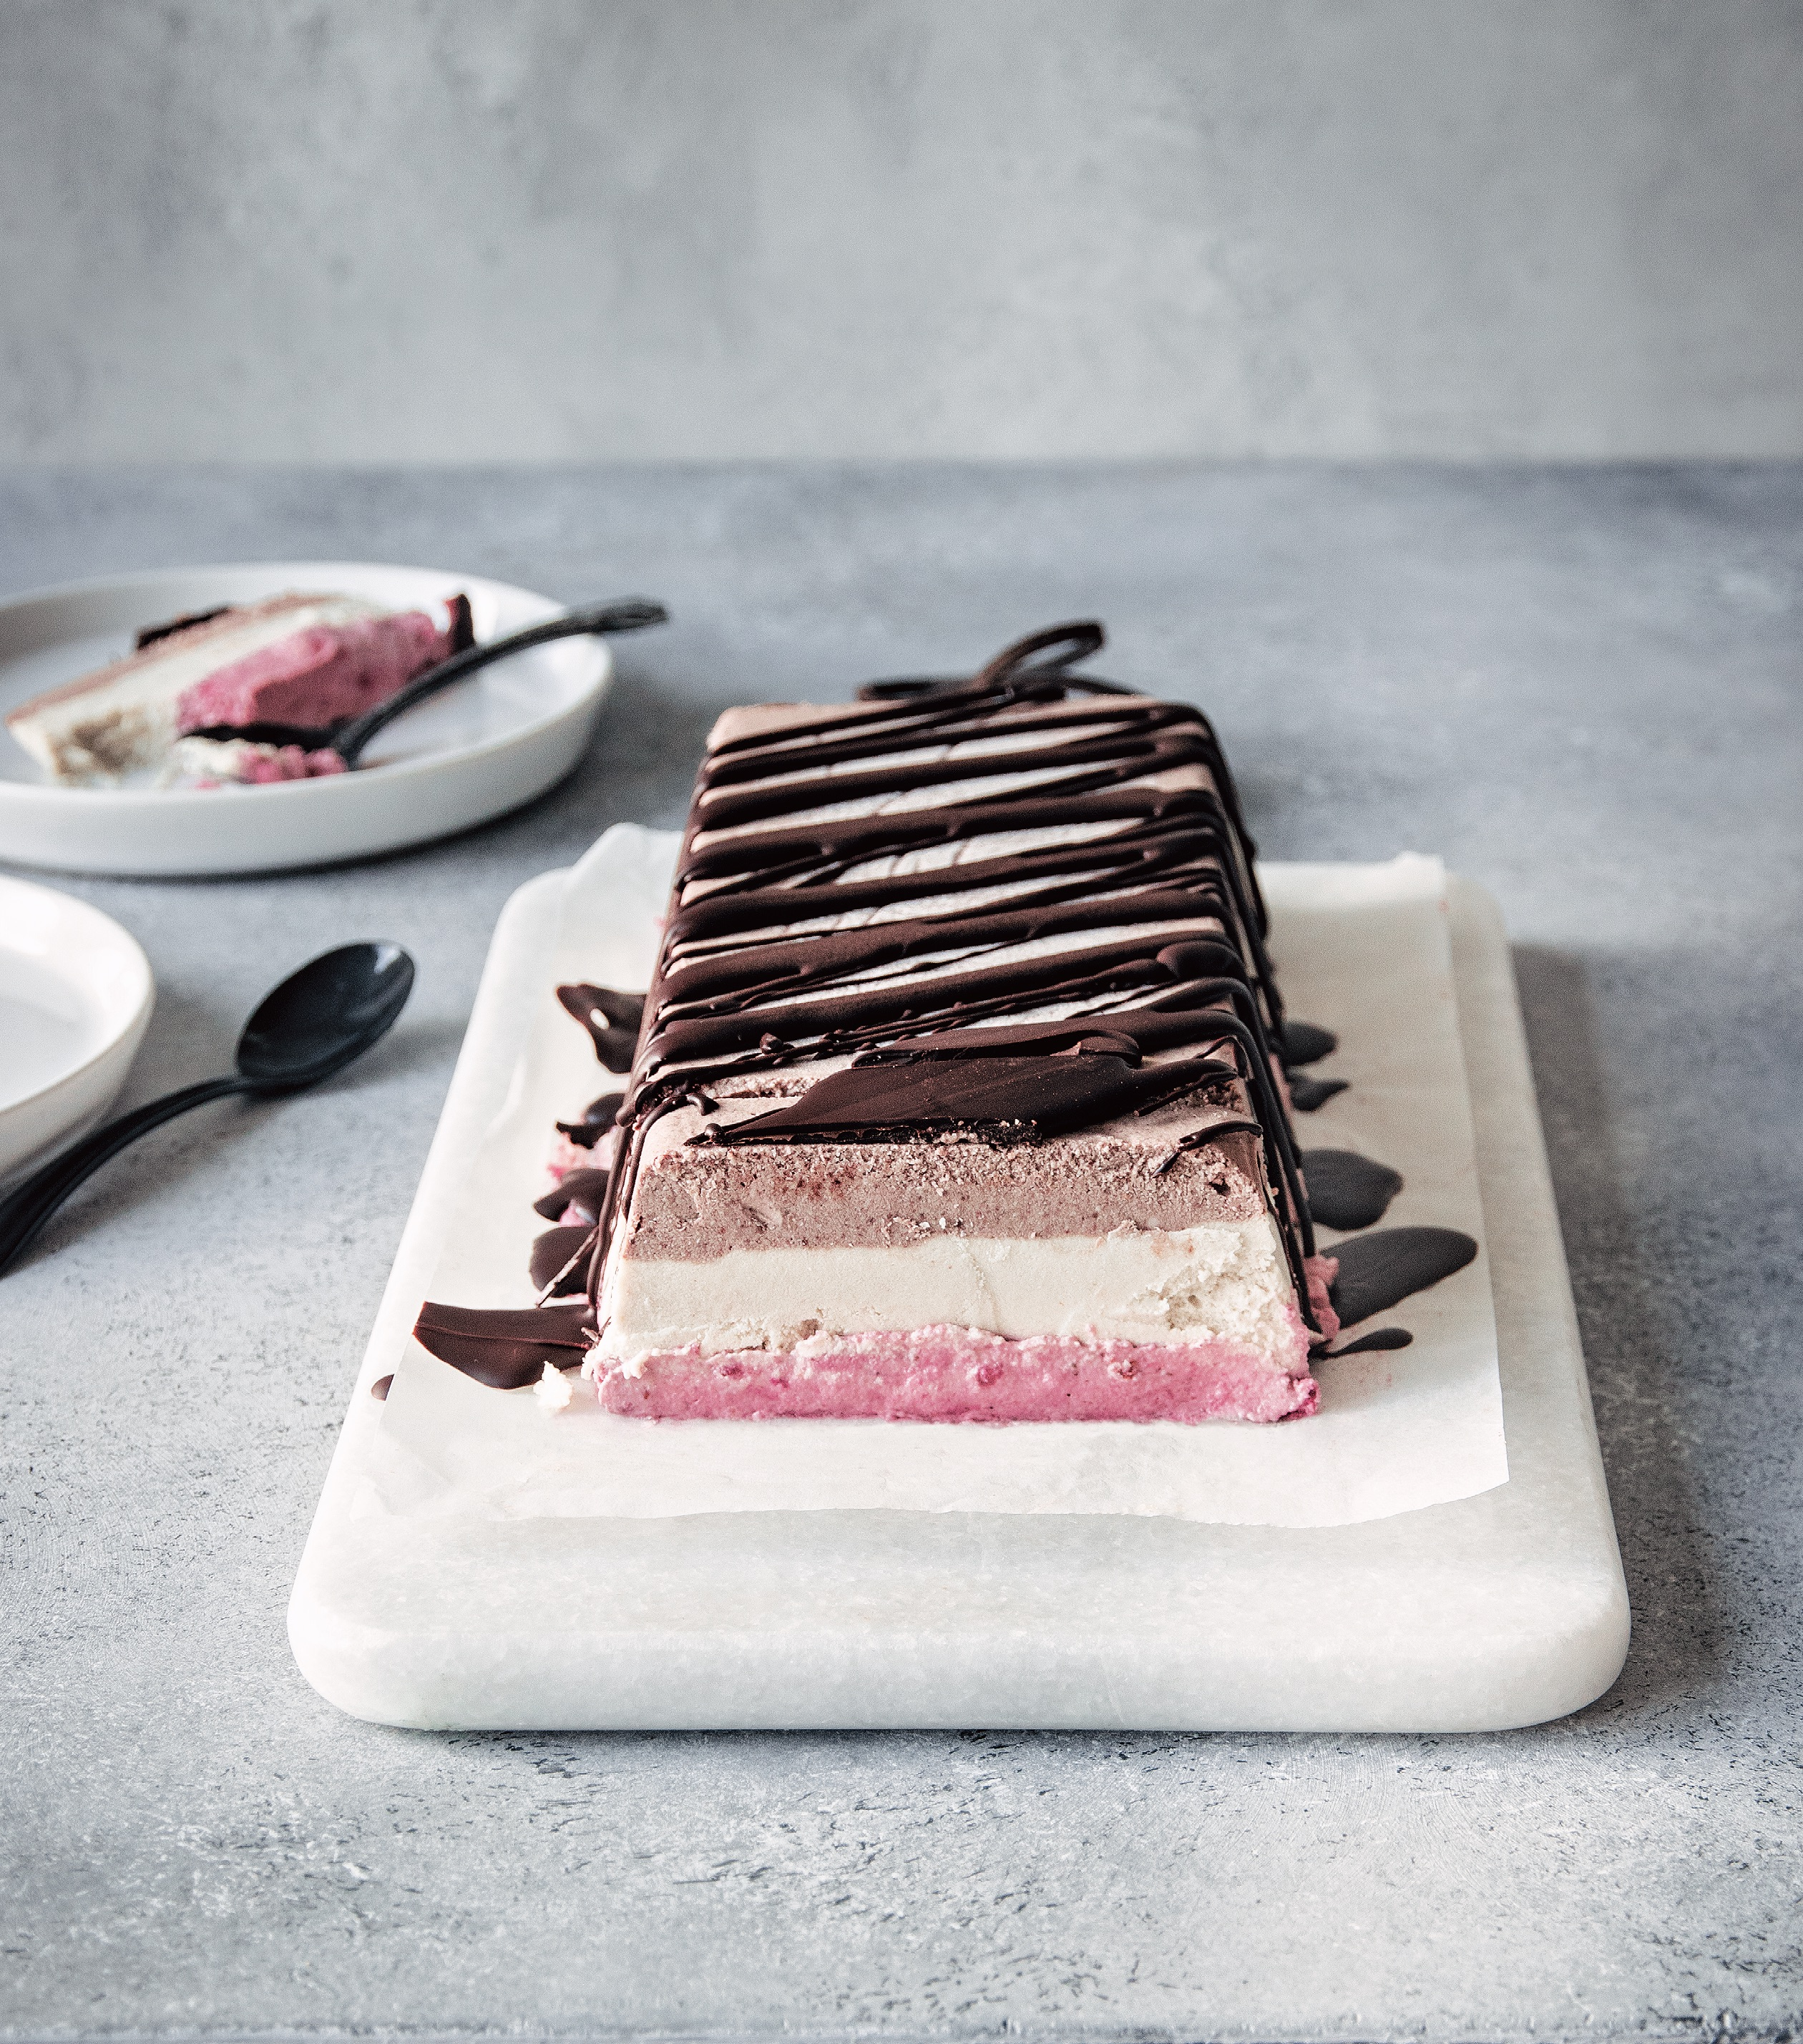 Vegan Neapolitan Ice Cream Cake